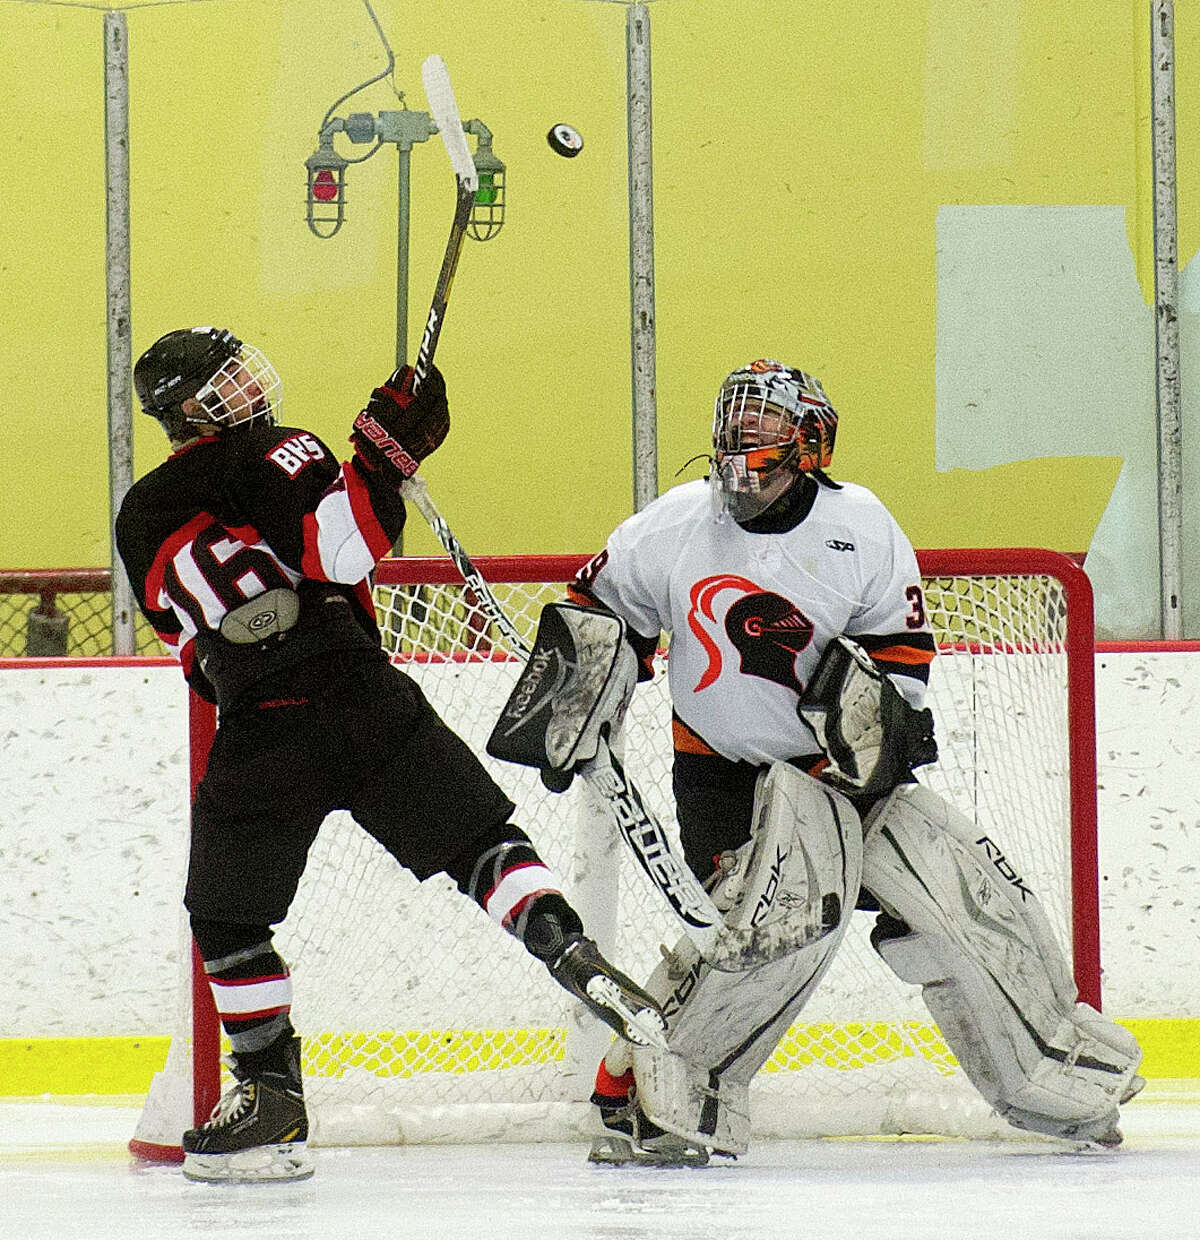 Stamford goalie Devin Camlin and Branford's Jason Vitale watch the puck in the air during Saturday's hockey game against Branford at Terry Connors Rink in Stamford, Conn., on December 21, 2013.